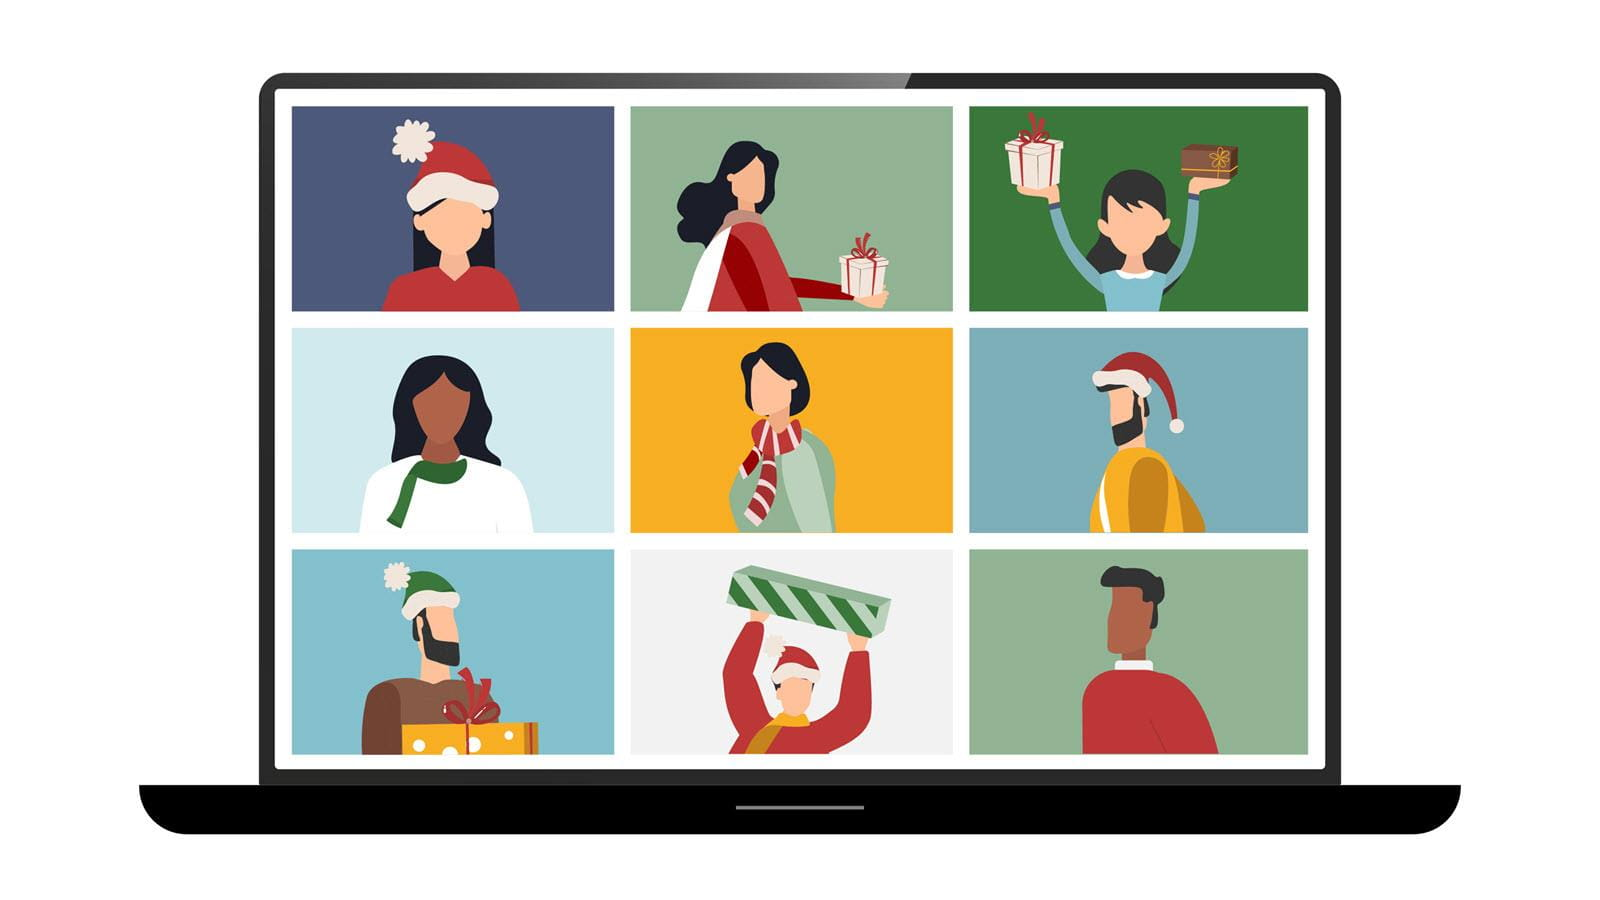 Illustration of a holiday gift exchange via Zoom call